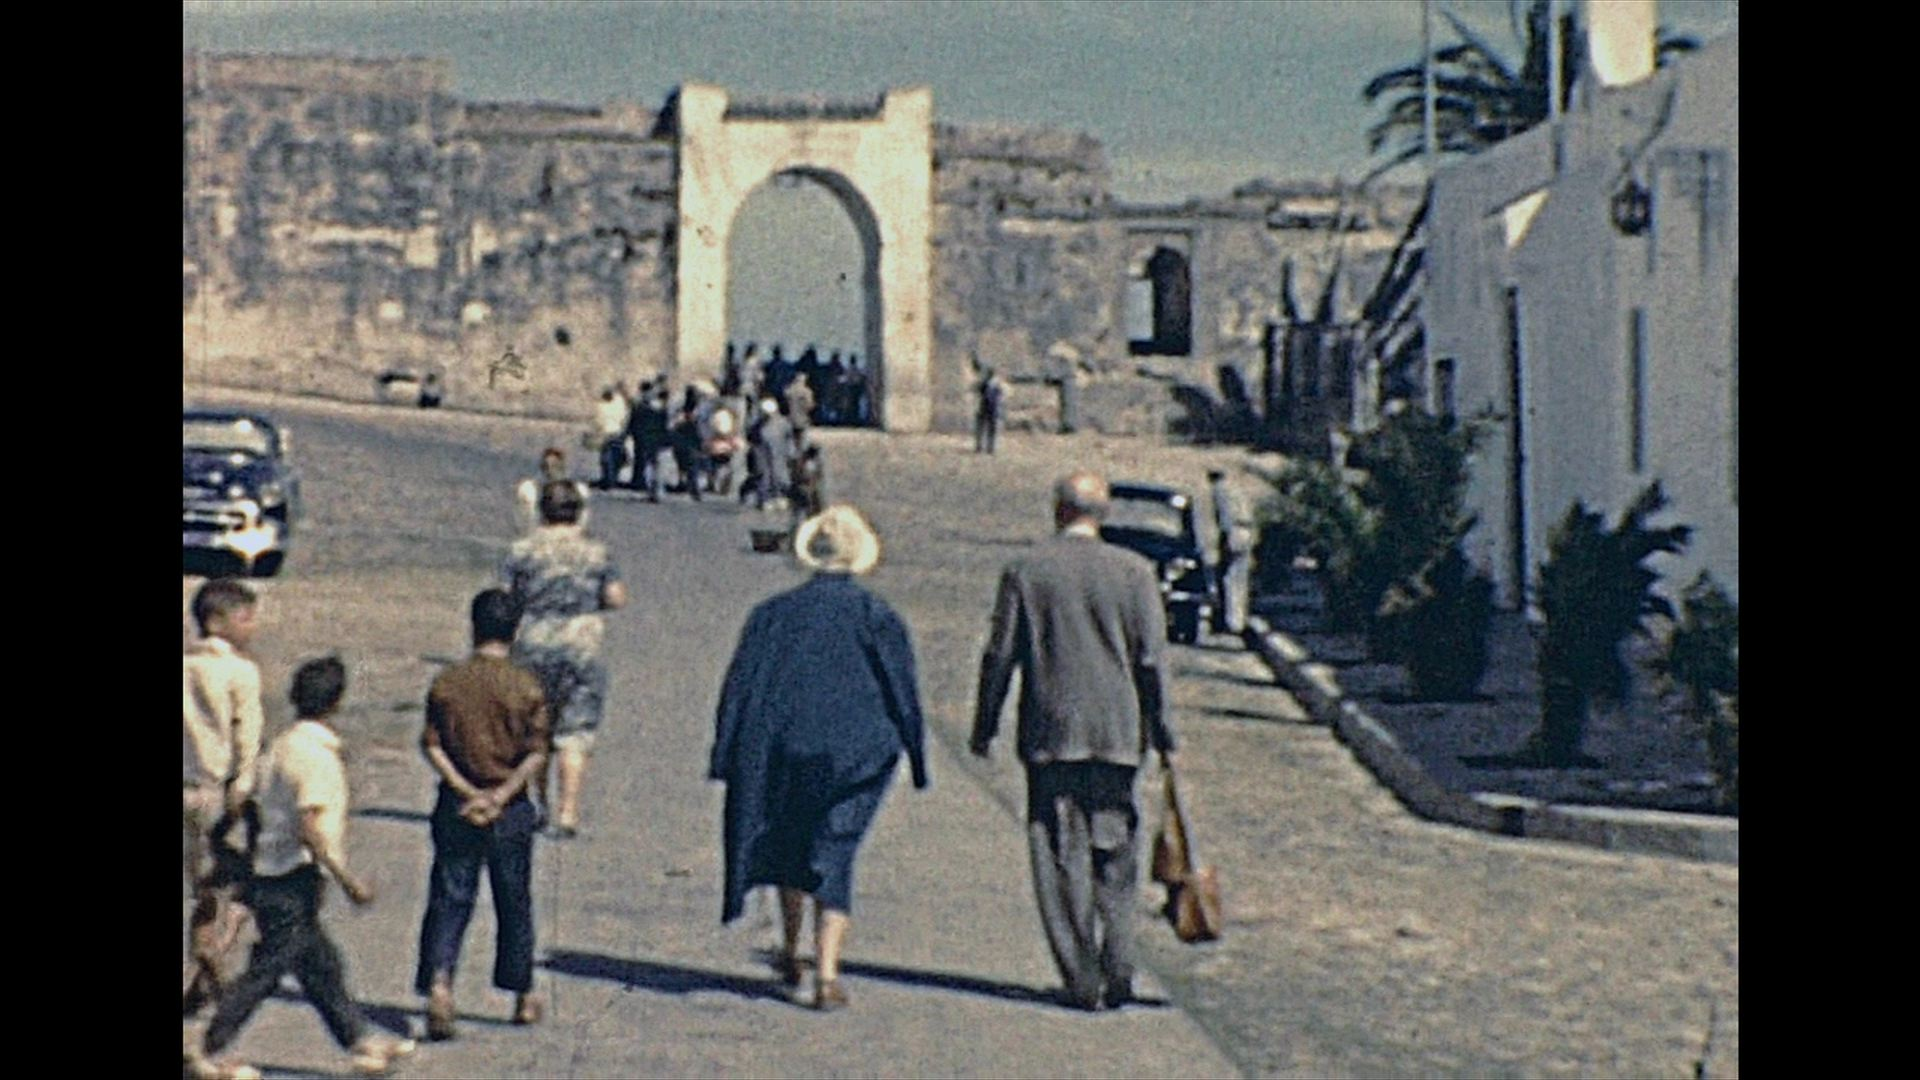 Morocco 1960 archive footage